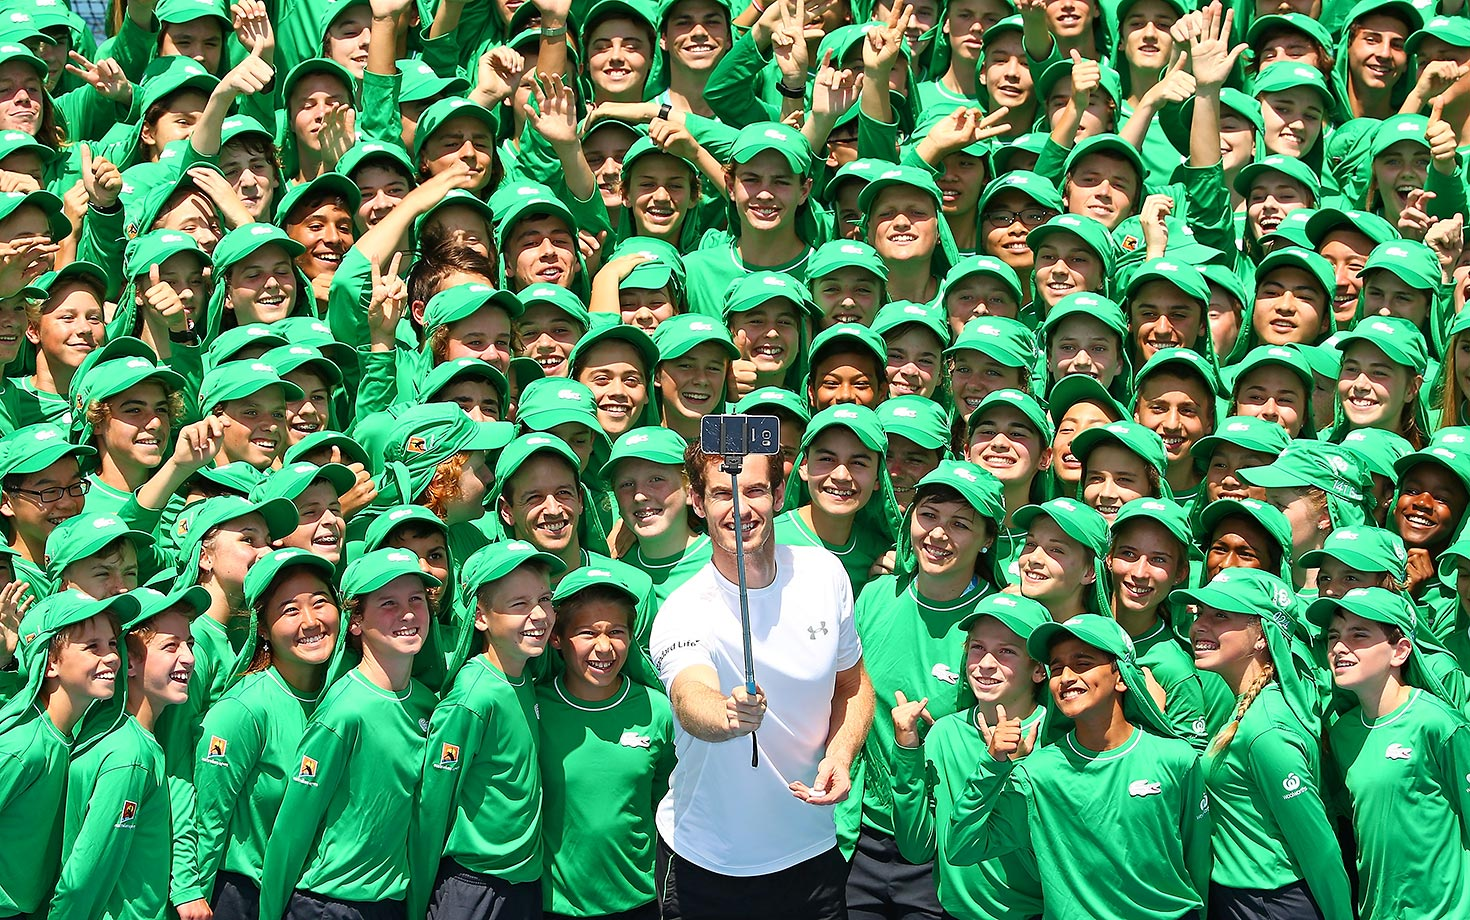 Andy Murray takes a selfie with ballkids while at the Australian Open.